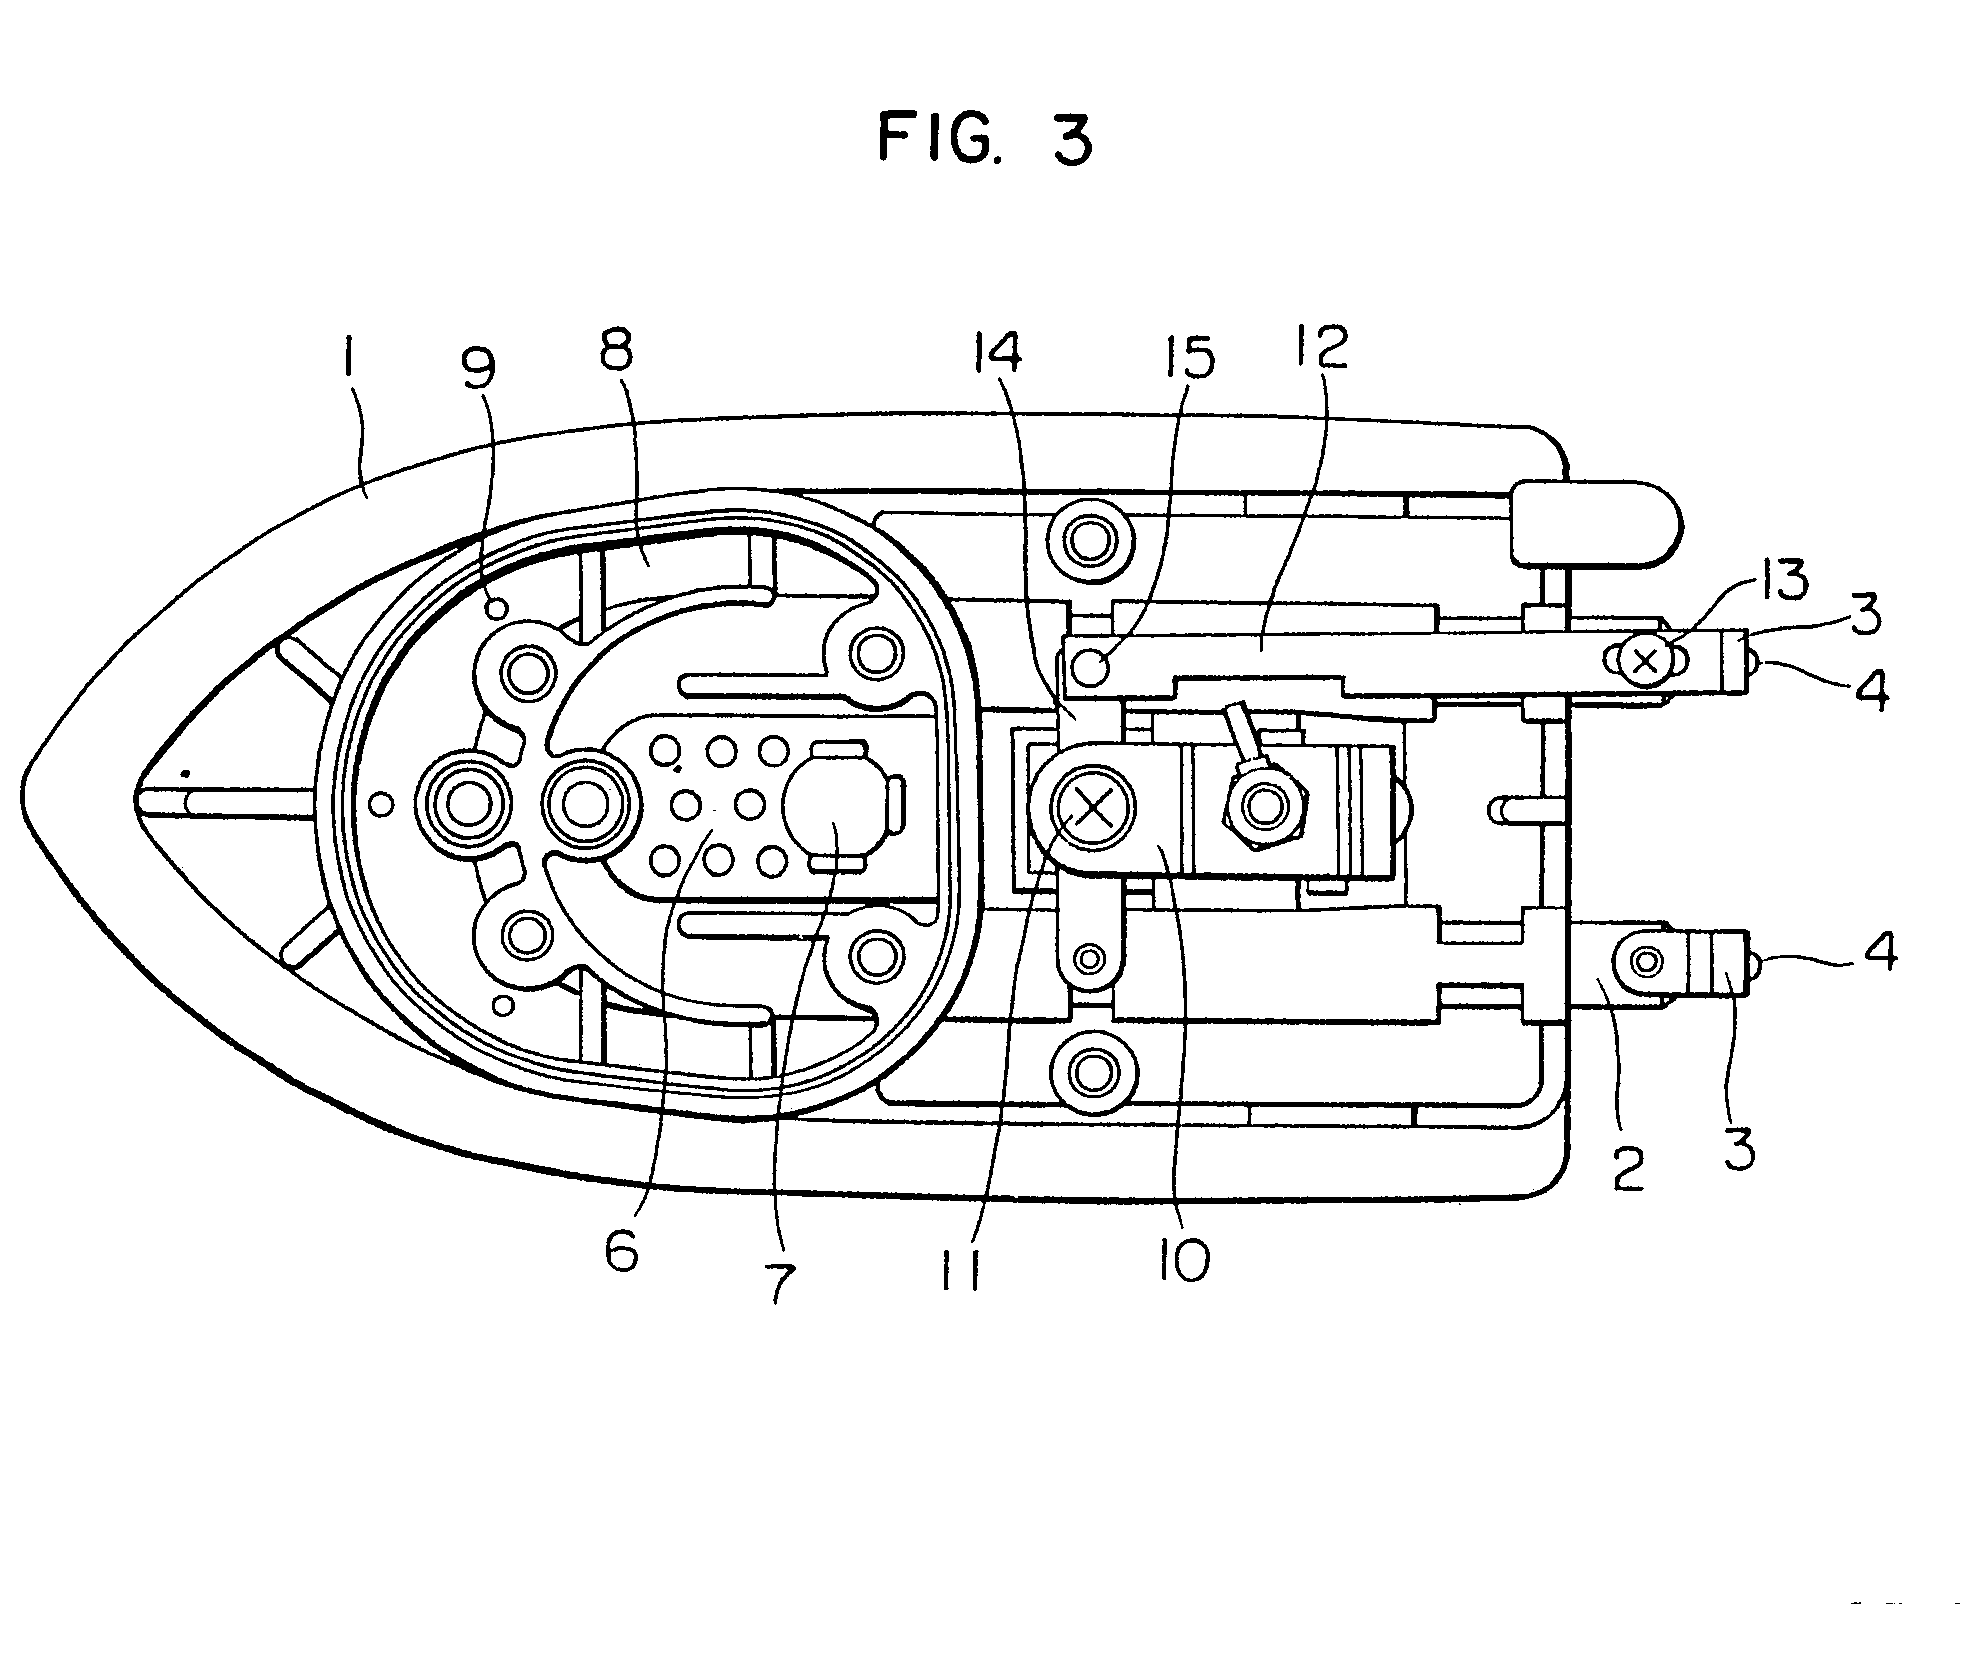 patent ep0164975b1 - electric iron